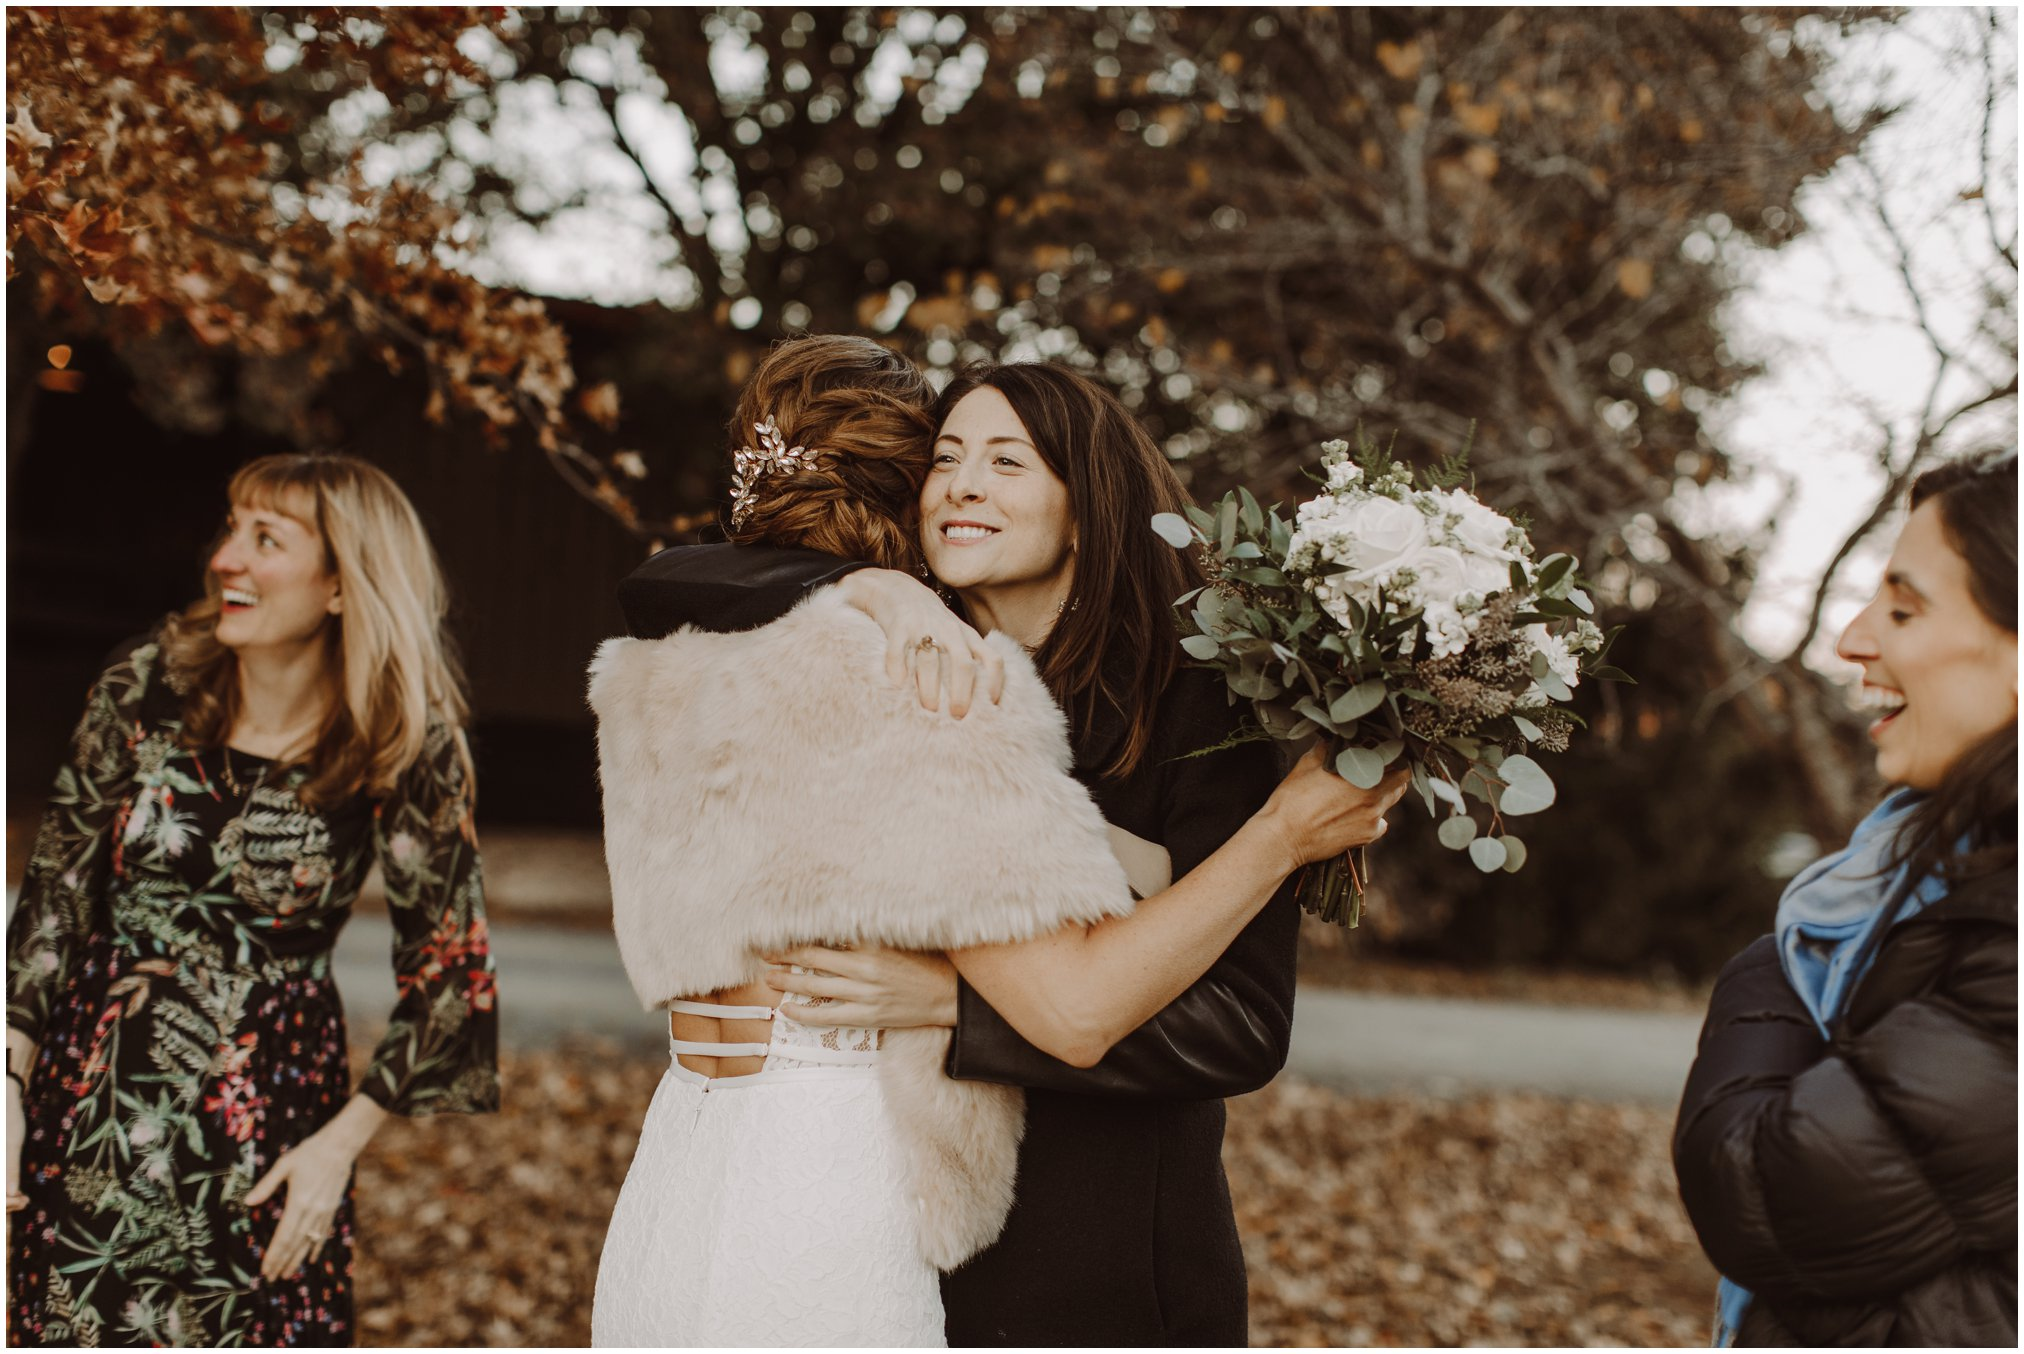 Bride and best friend hugging at wedding